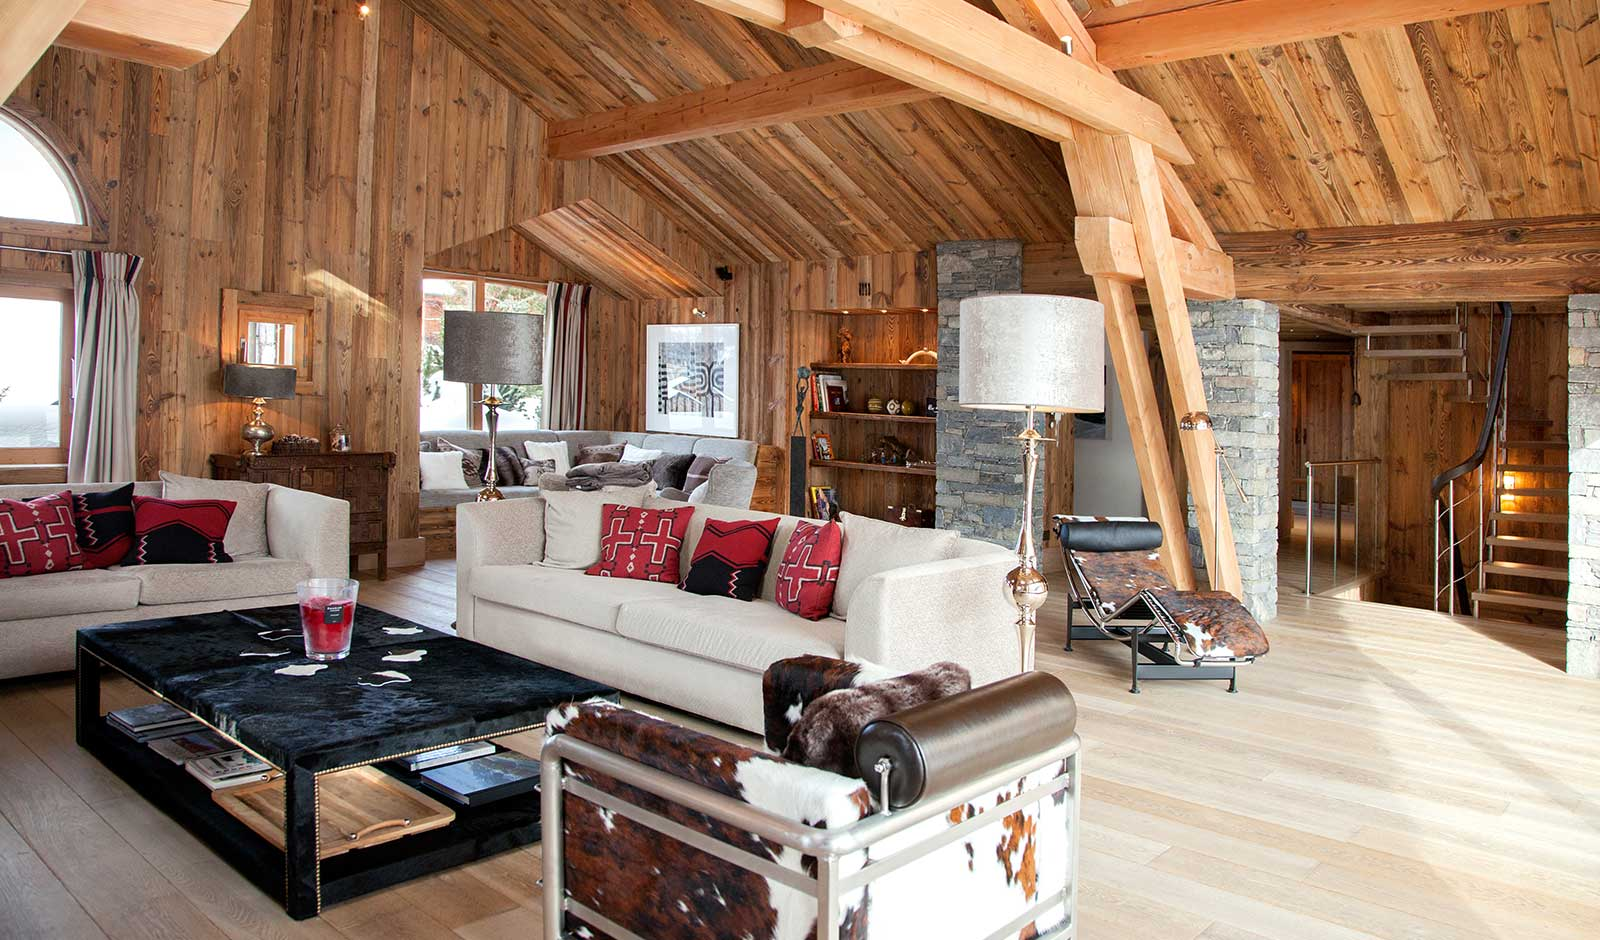 chalet-mont-tremblant-18-atelier-crea-and-co-architecte-design-project-manager-meribel-savoie